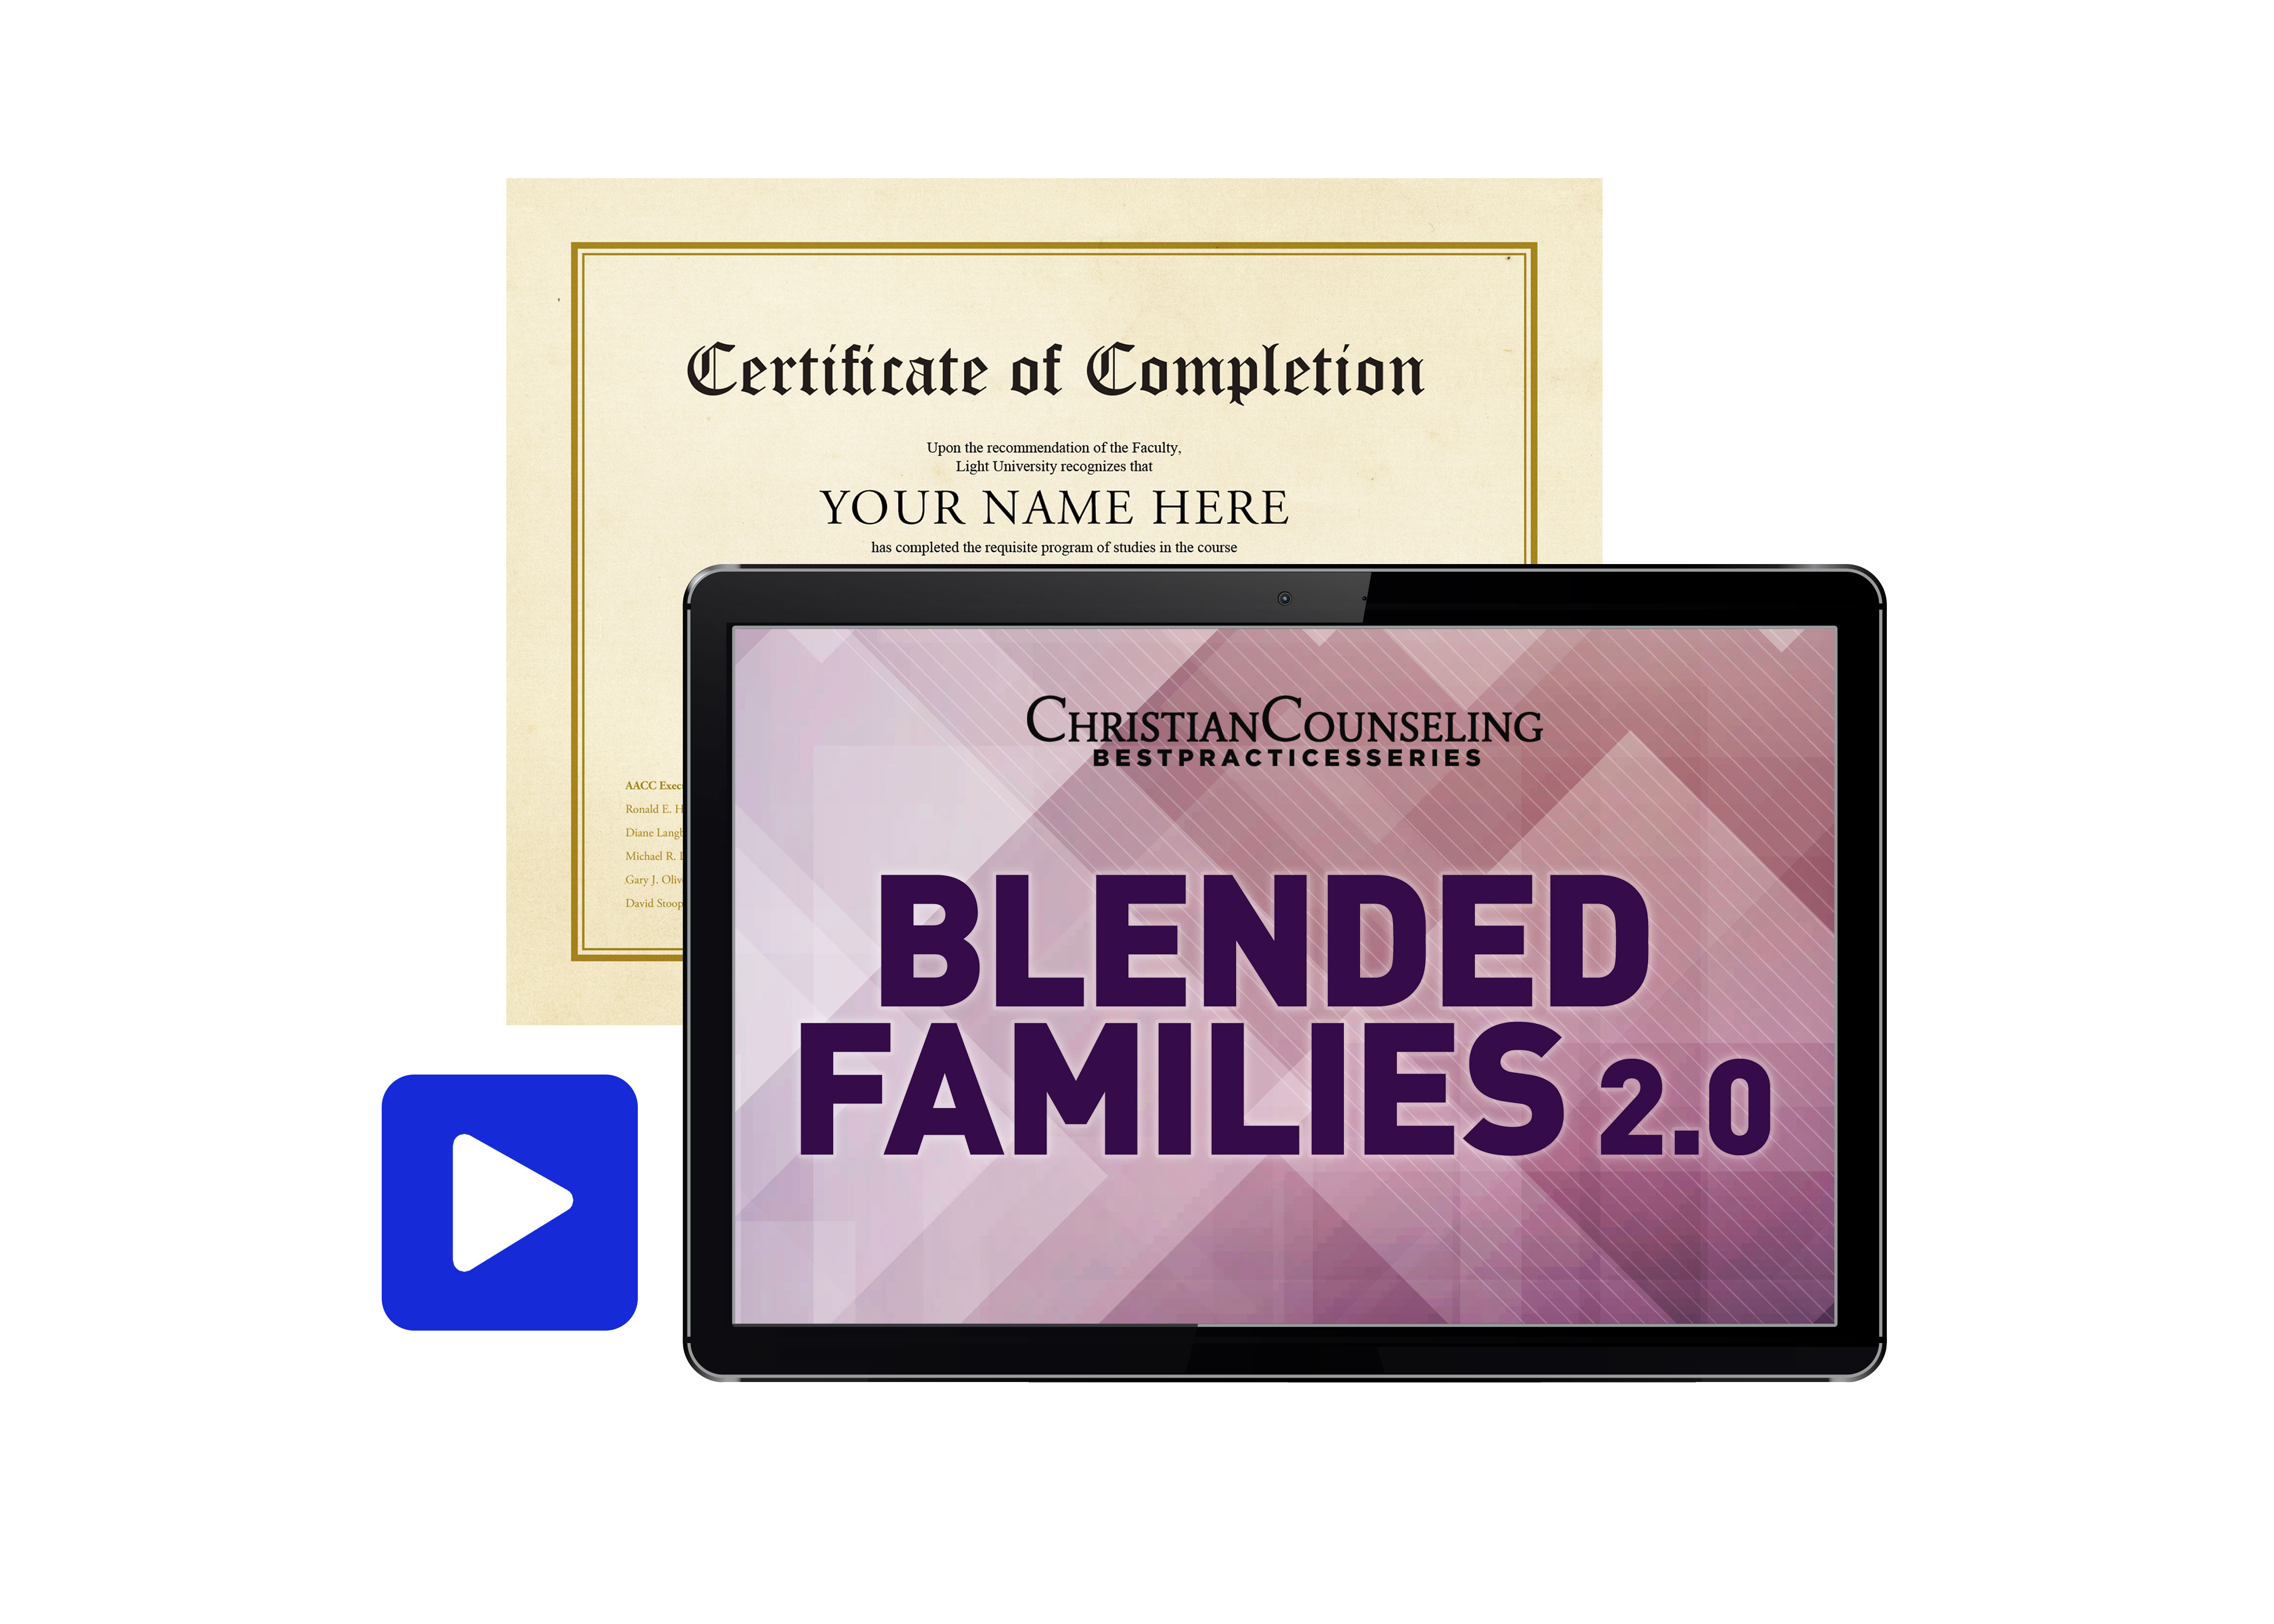 Blended Families 2.0